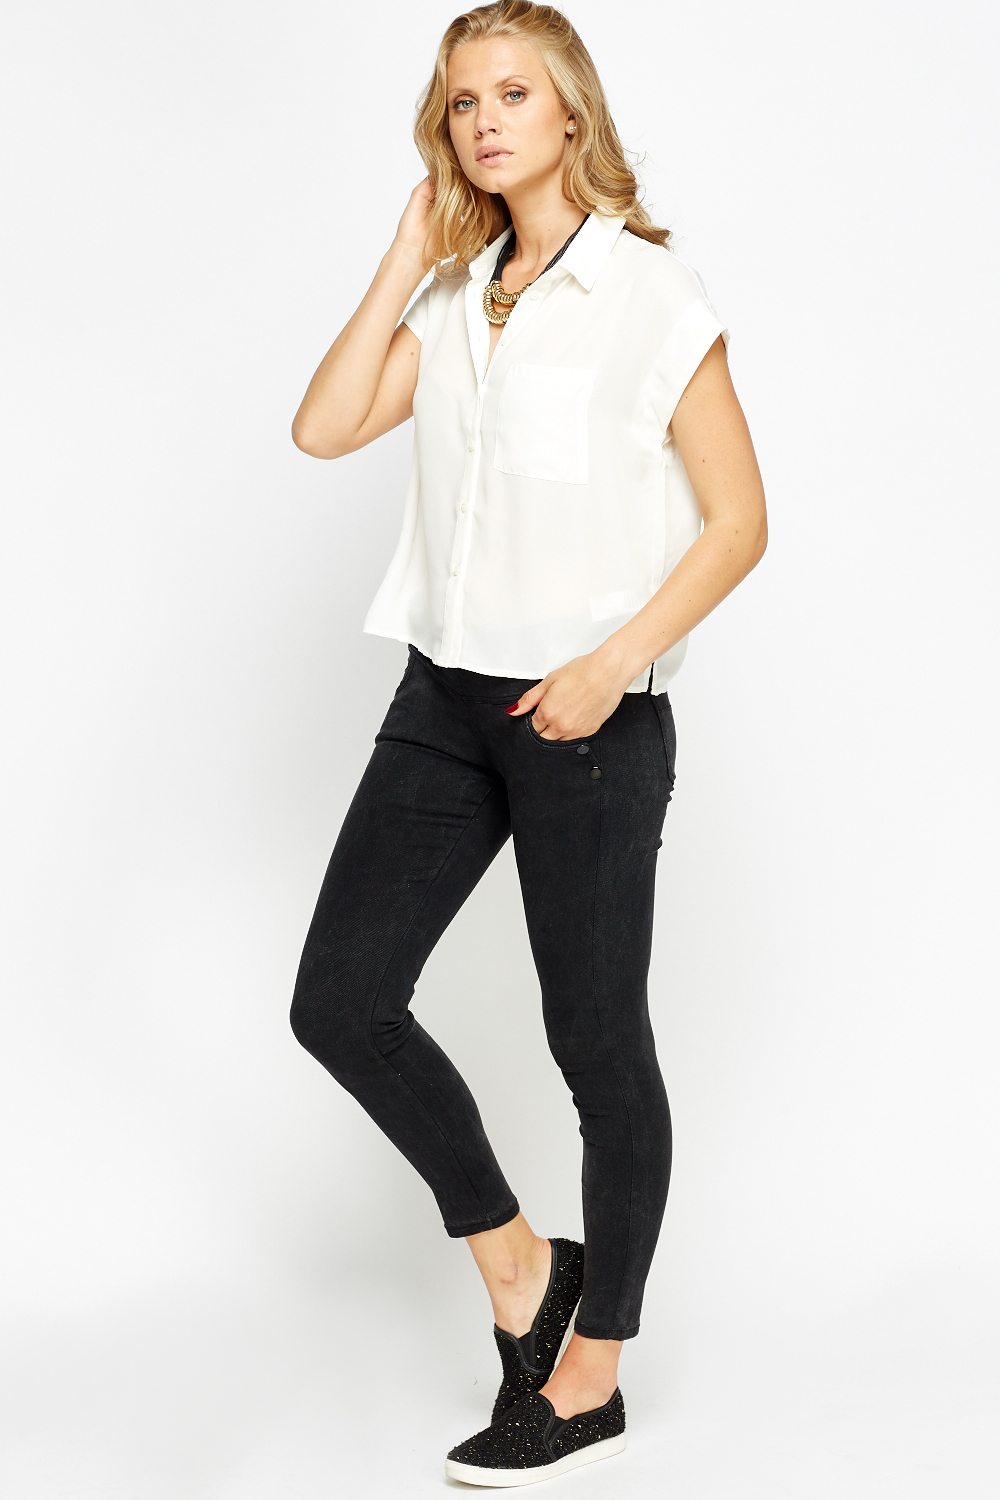 d8a8bb35 Off White Casual Sheer Shirt Blouse - Just £5